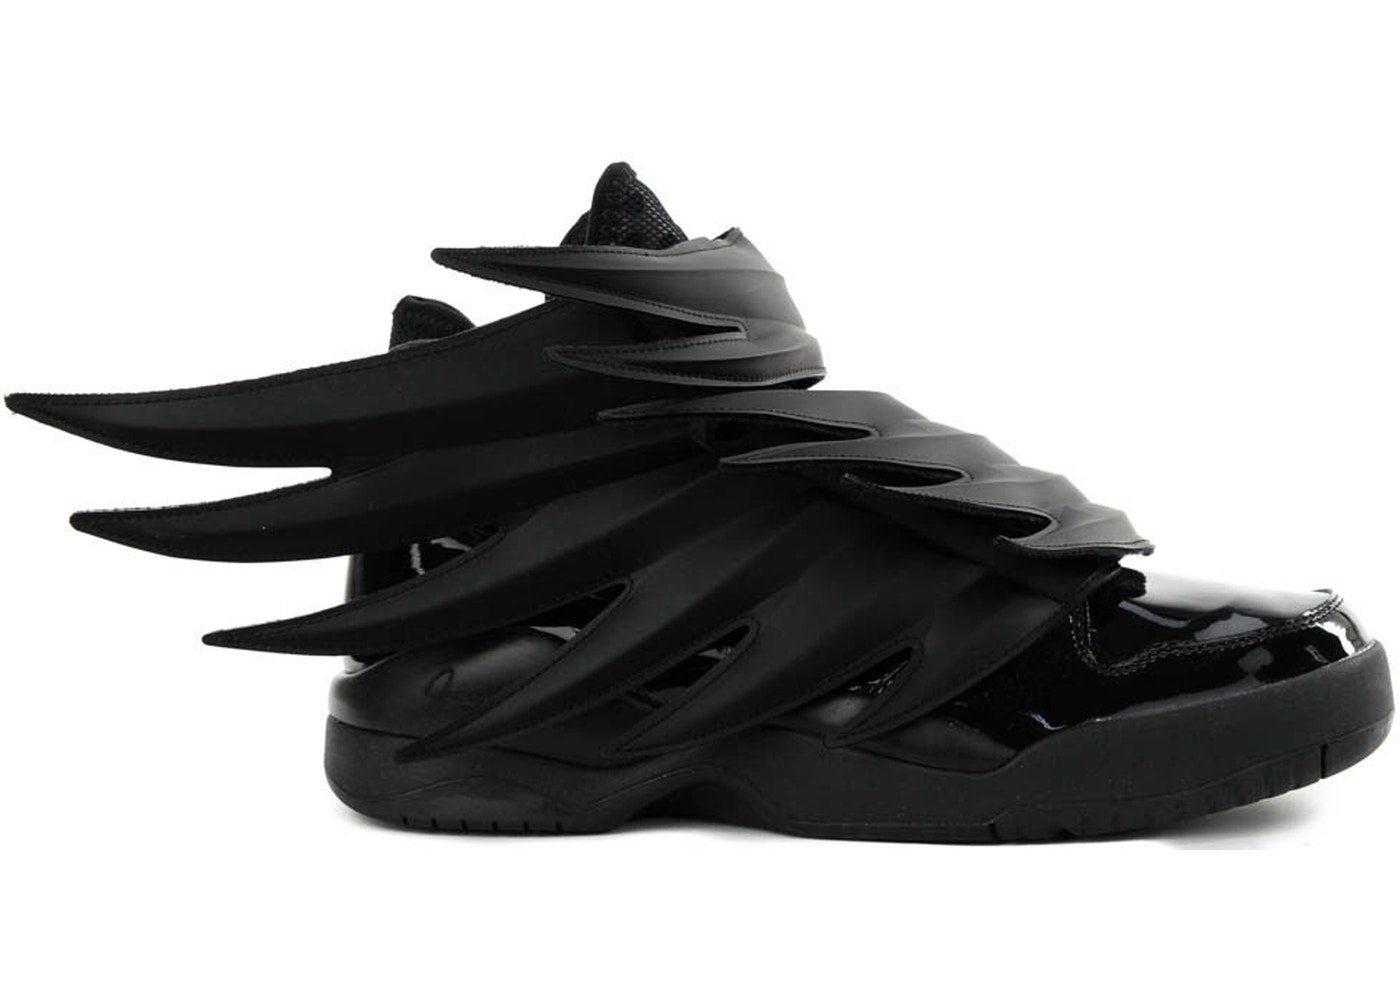 reputable site b832b df110 adidas Jeremy Scott Wings 3.0 Dark Knight